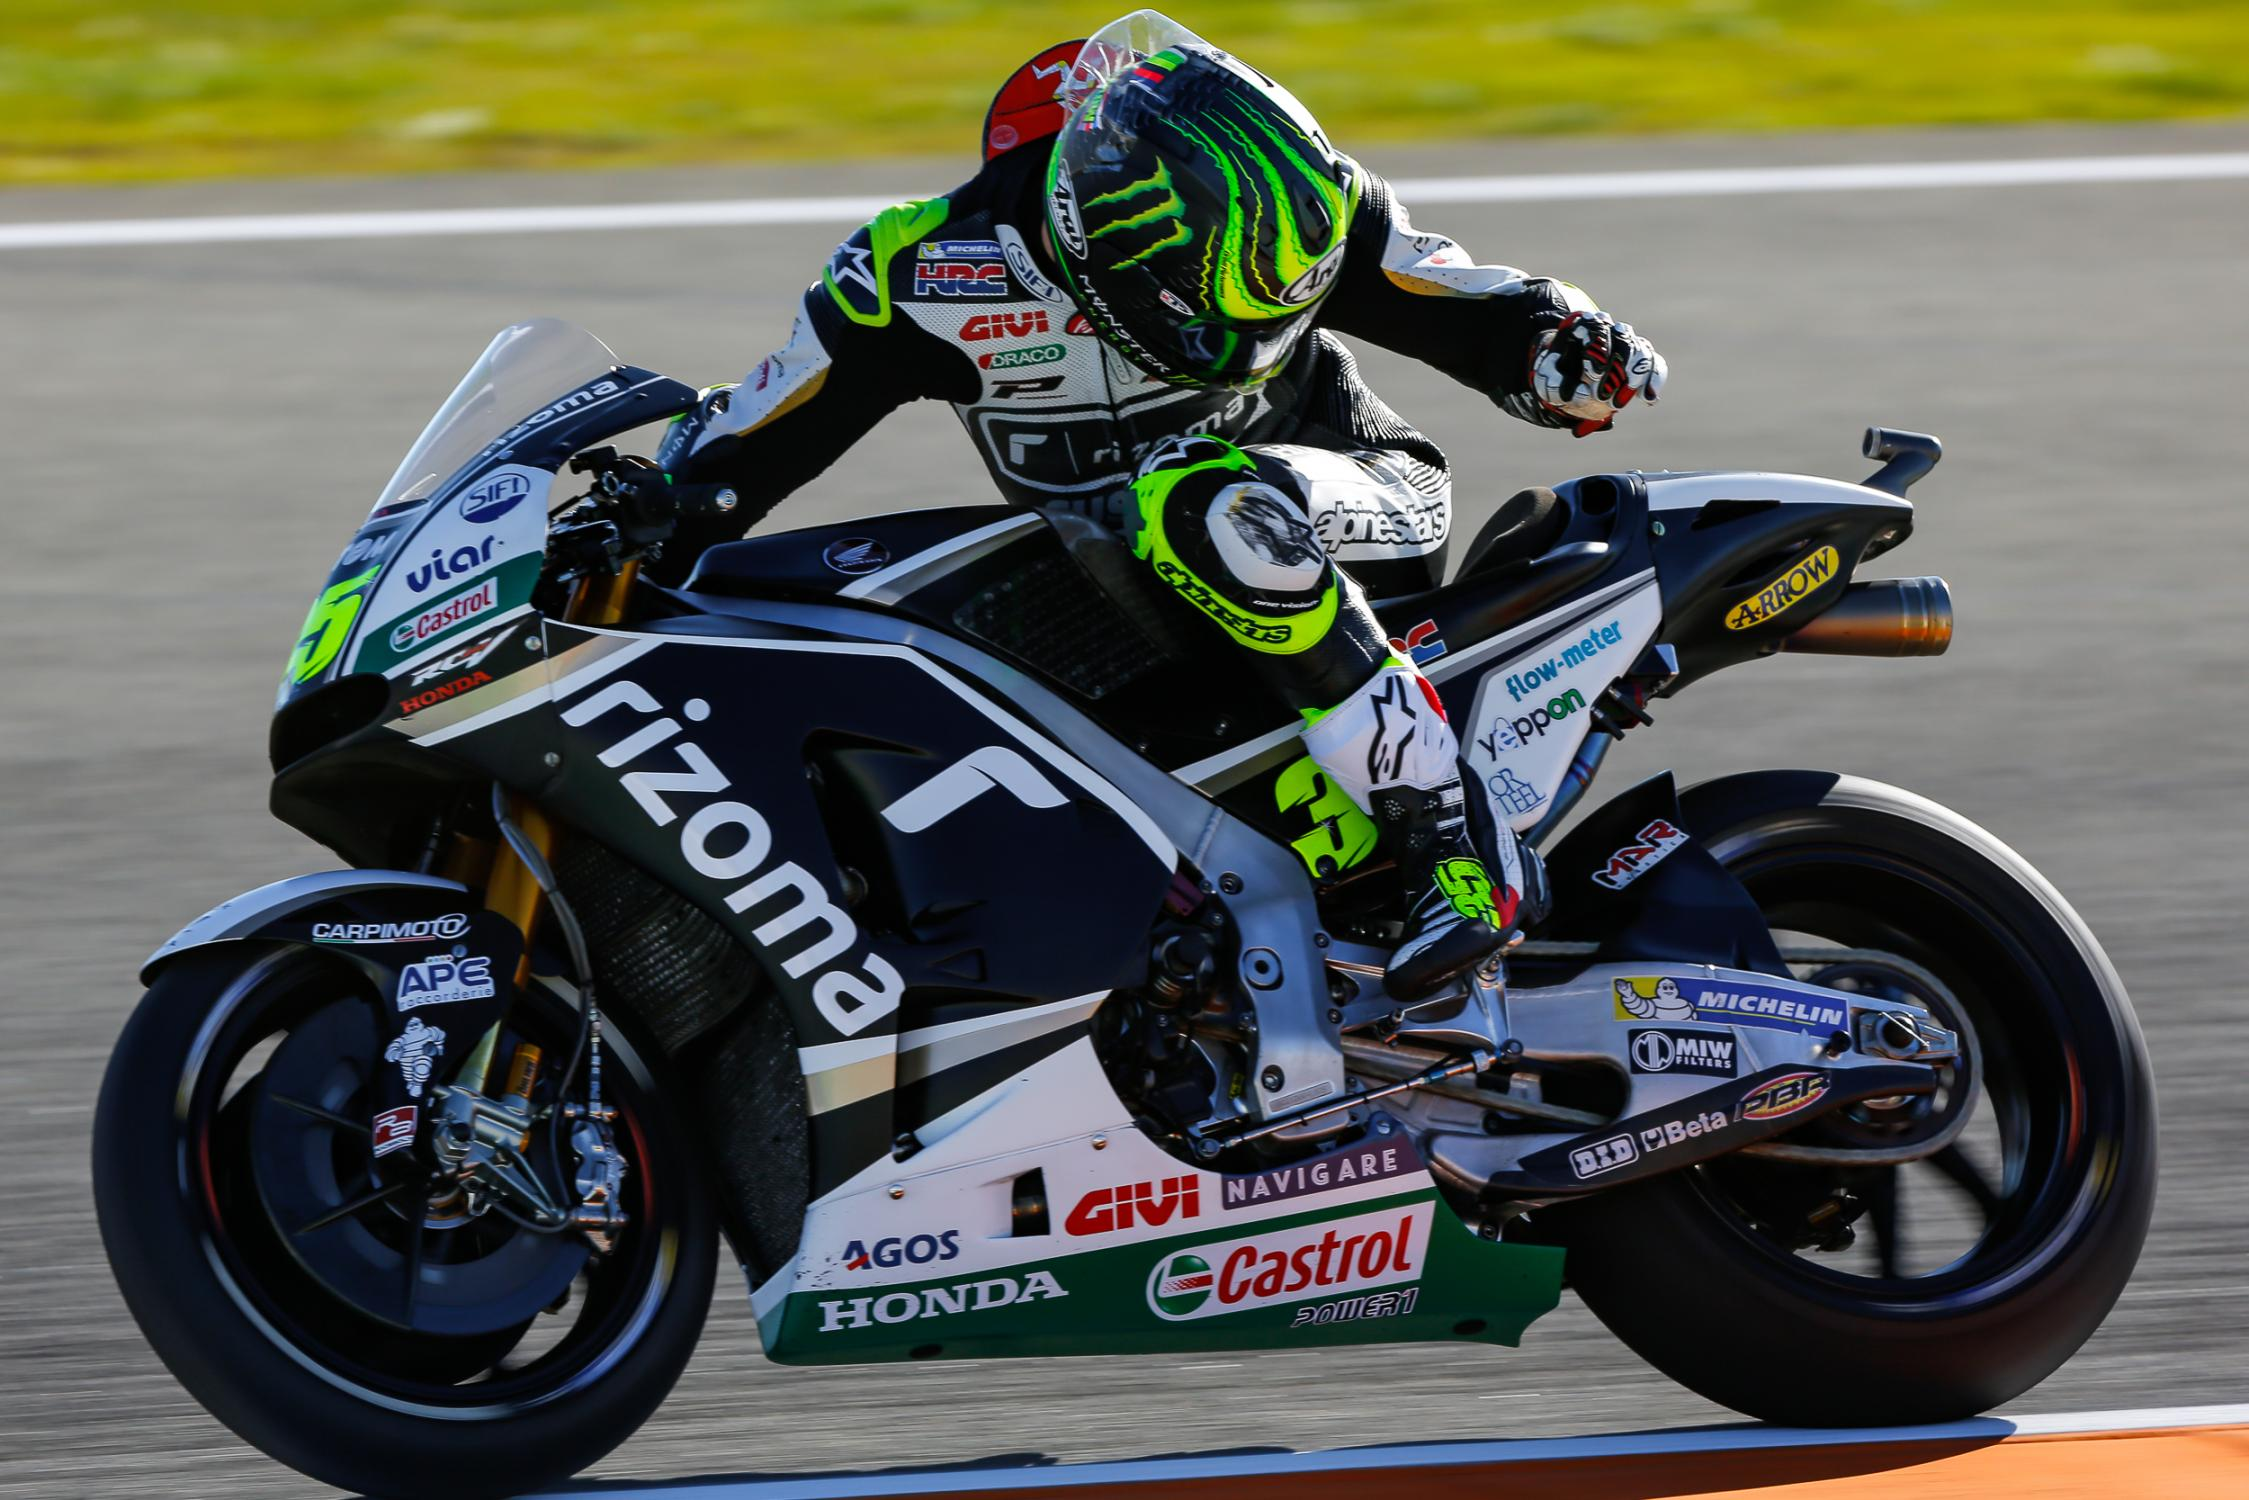 35-cal-crutchlow-eng_gp_4277.gallery_full_top_fullscreen.jpg